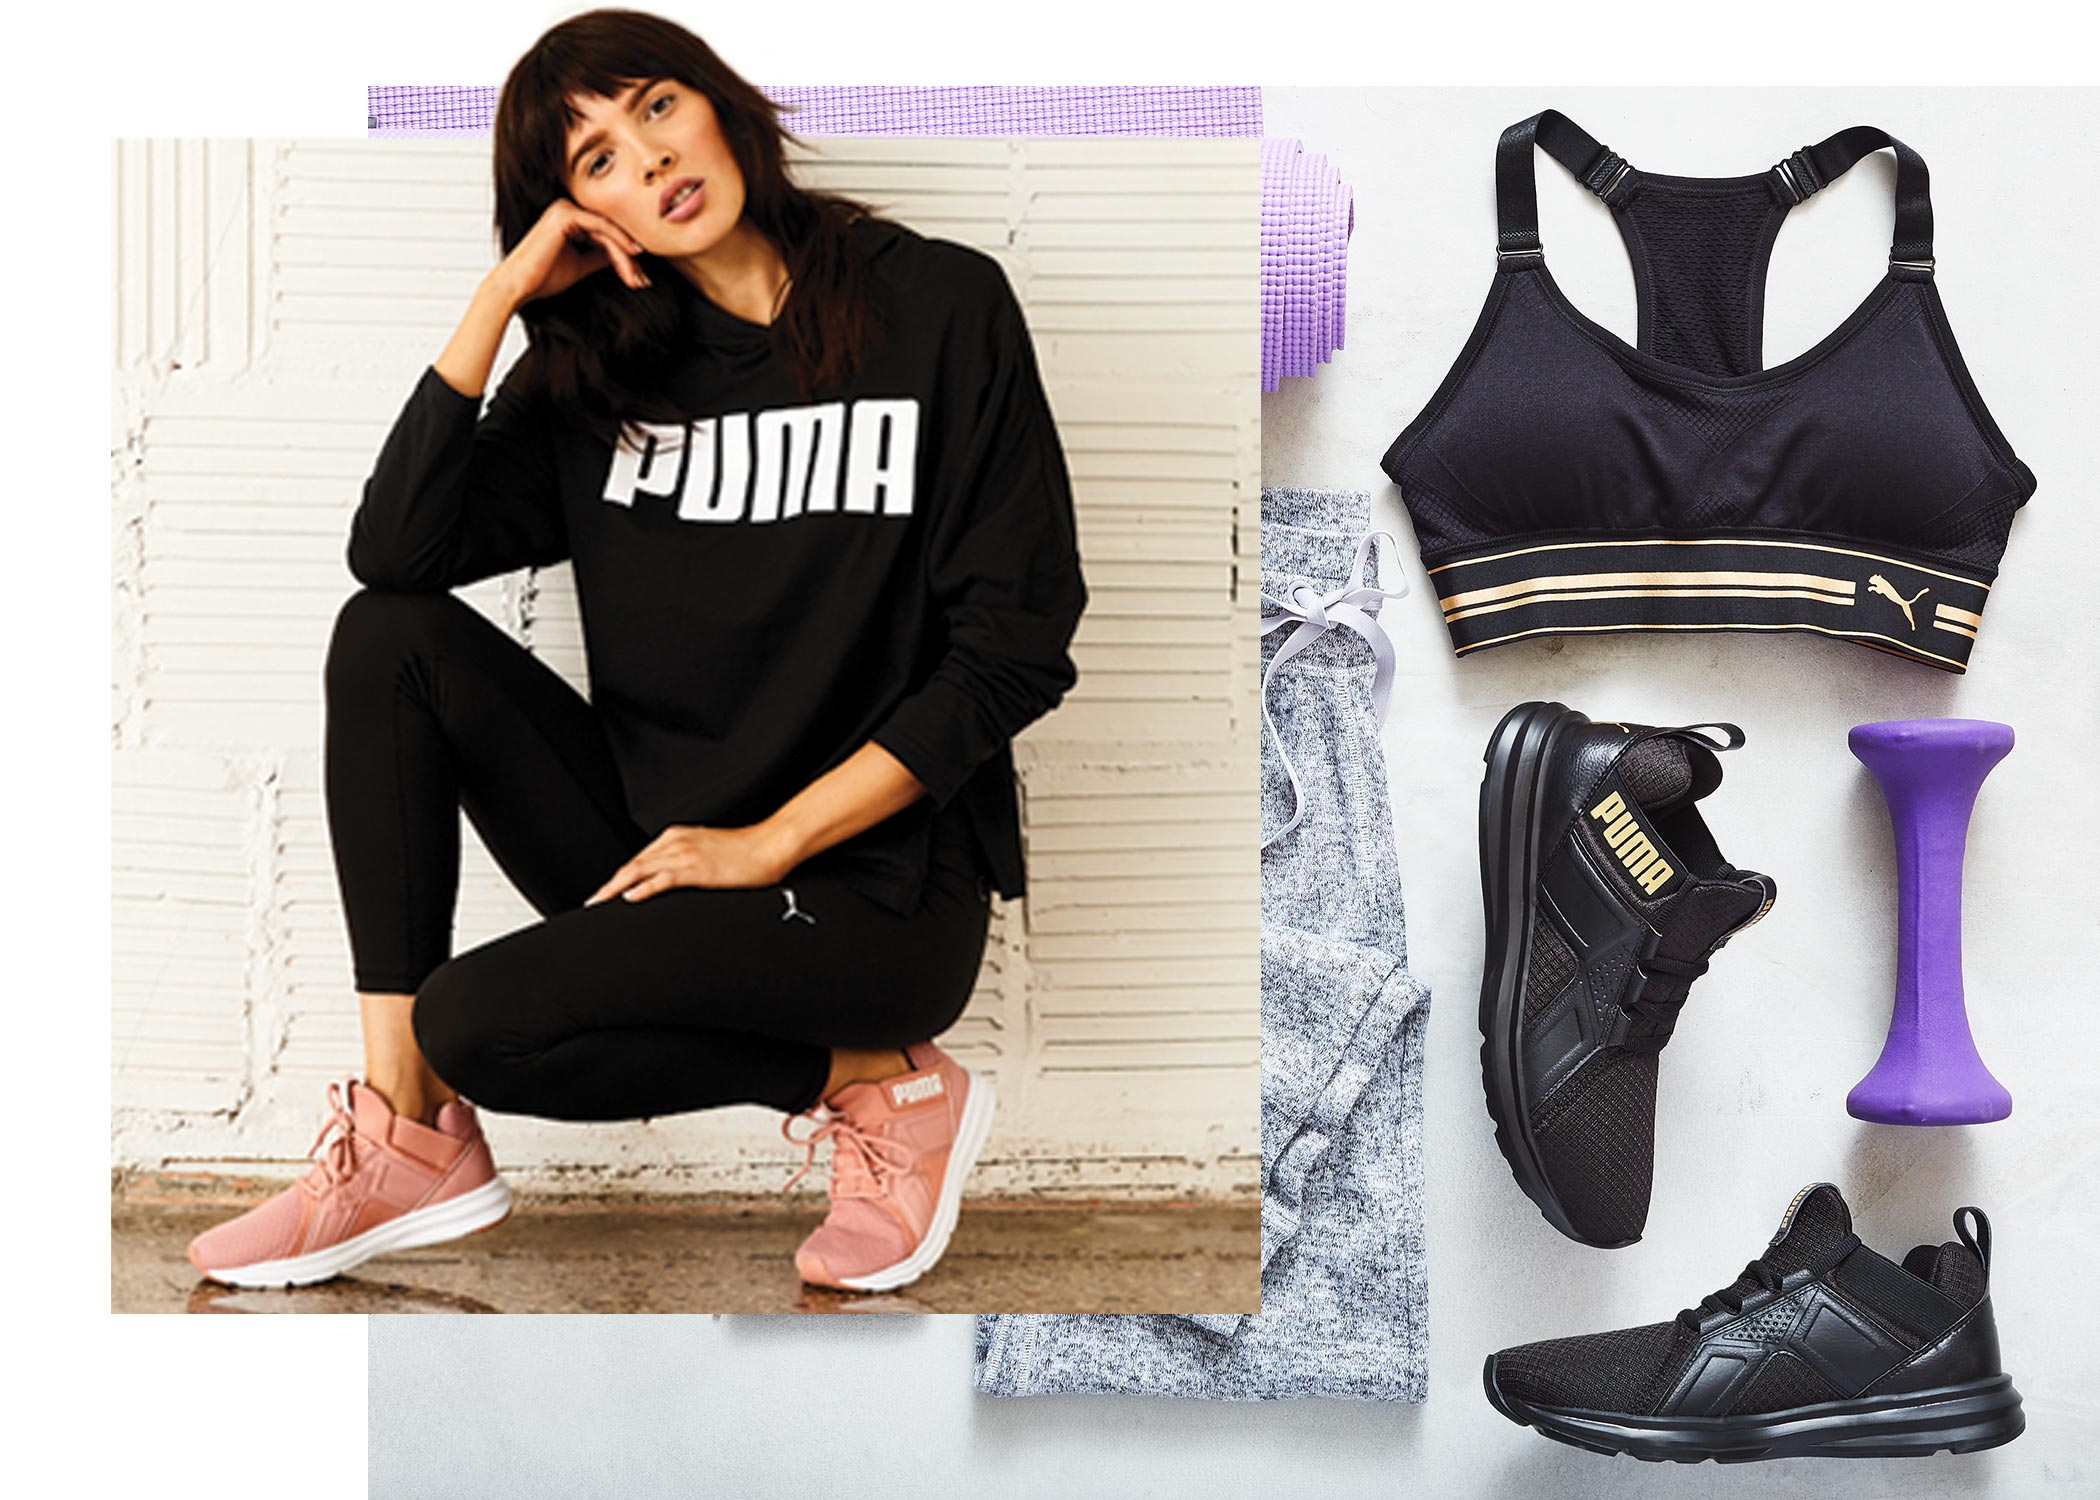 Girl wearing stylish puma athletic clothes and pink puma sneakers